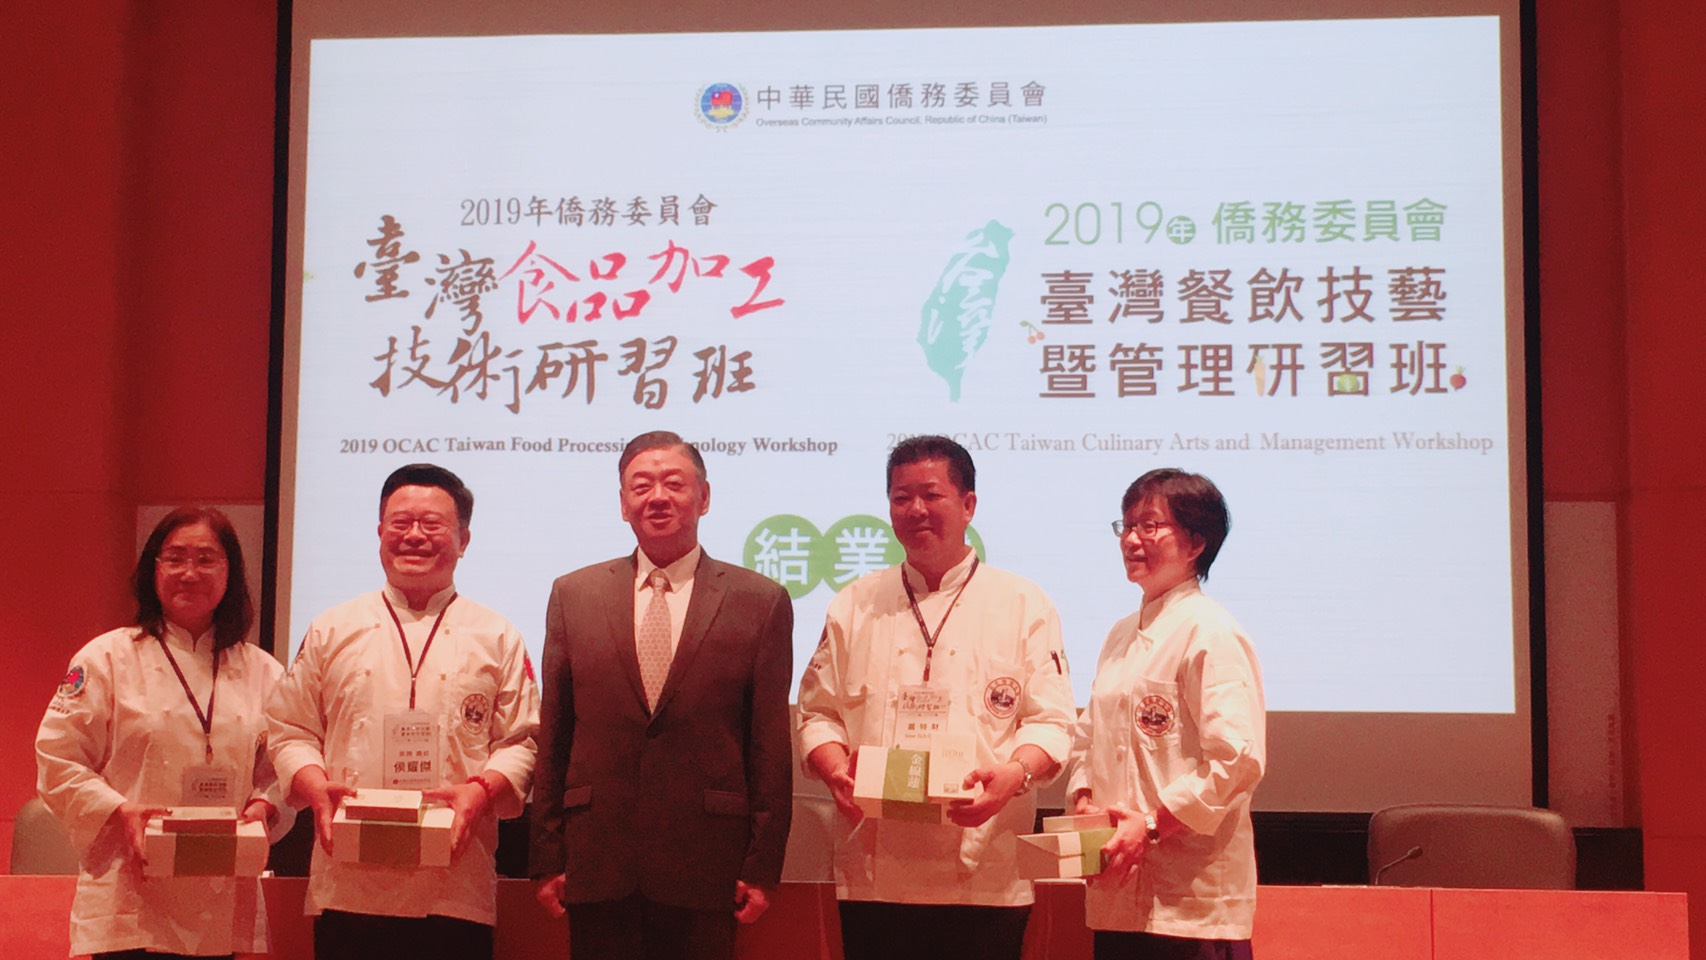 2019/07/04 2019 OCAC Taiwan Culinary Arts and Management Workshop